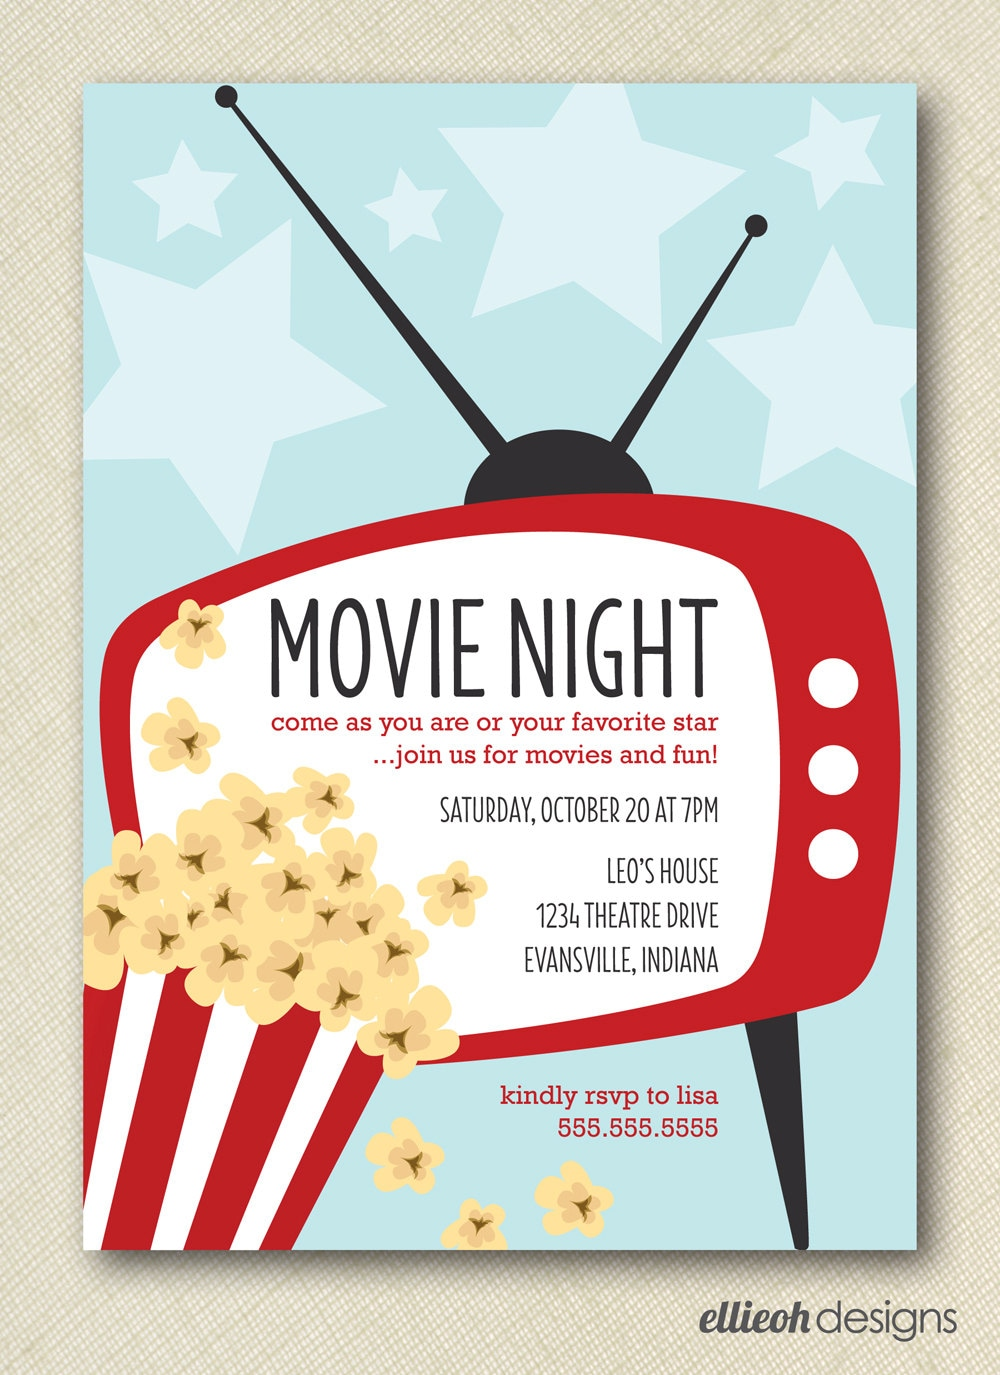 Fabulous image regarding movie night invitations free printable